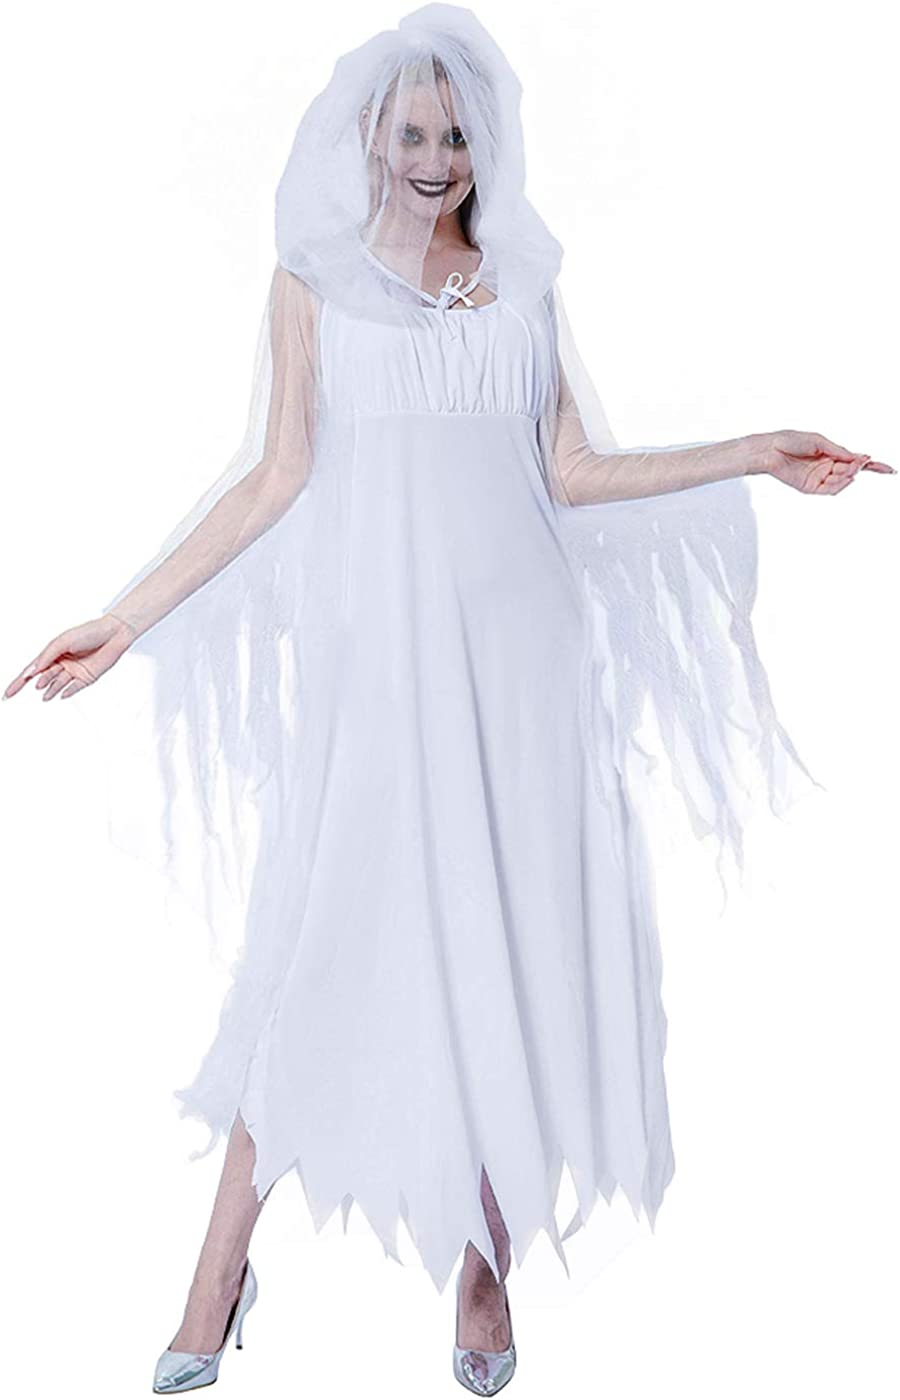 Women's Ghost Costume Bride White Hooded Cape Costume